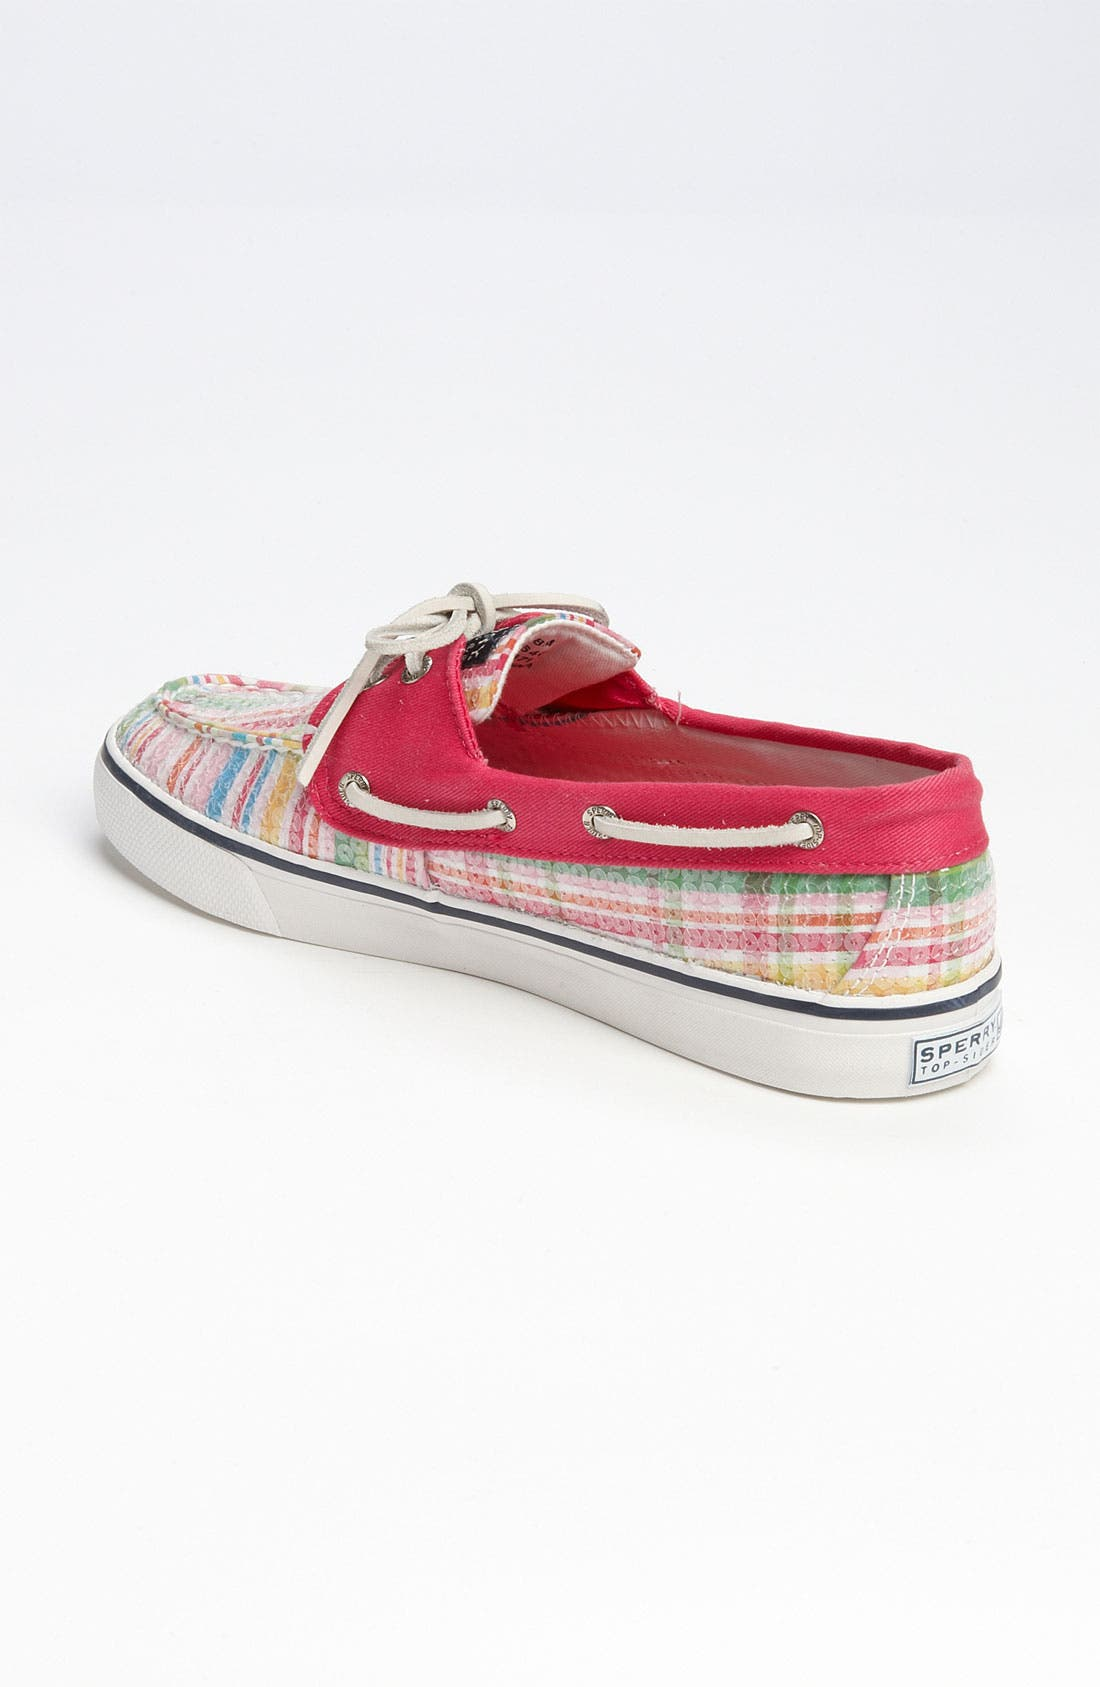 Top-Sider<sup>®</sup> 'Bahama' Sequined Boat Shoe,                             Alternate thumbnail 122, color,